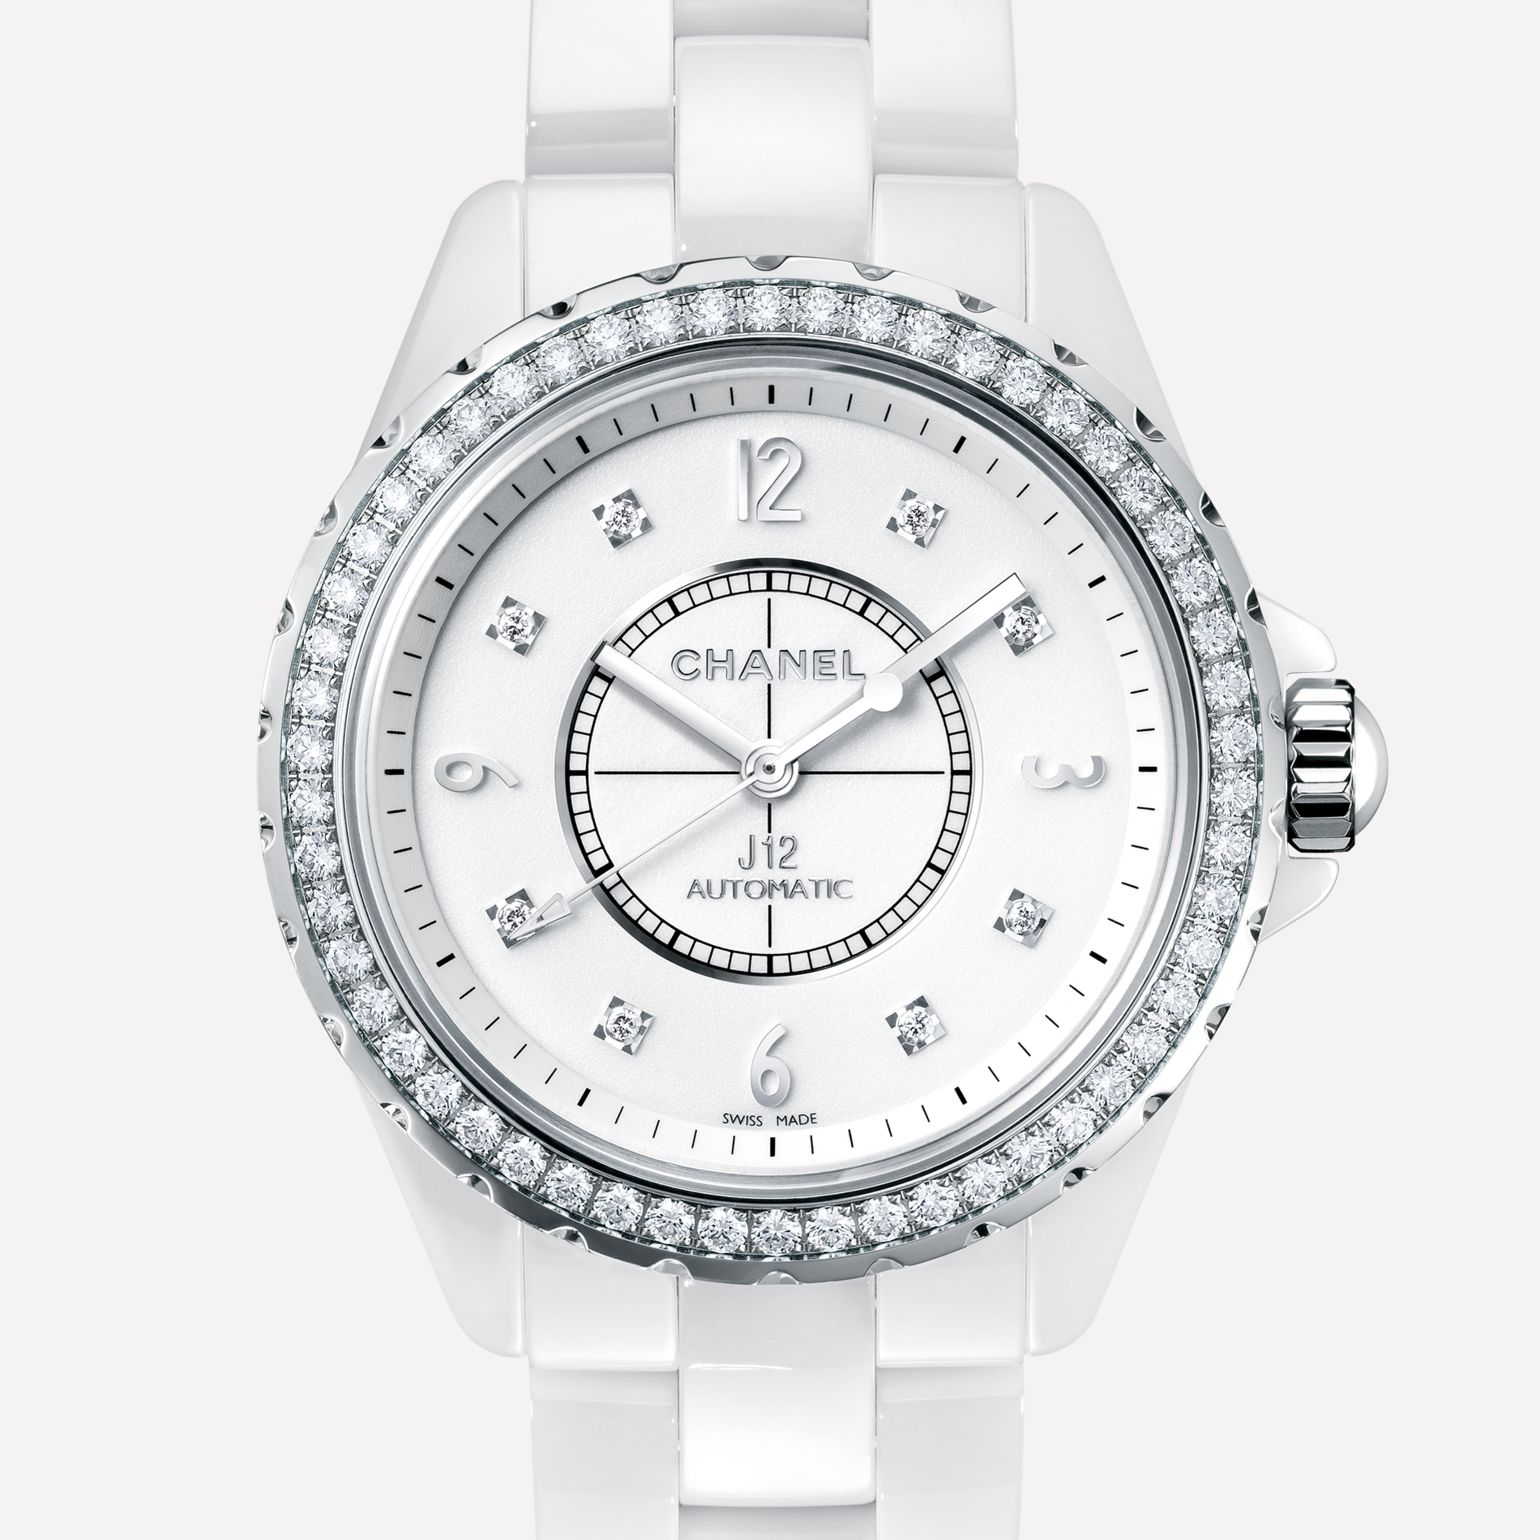 Bvlgari Watches Real Or Fake